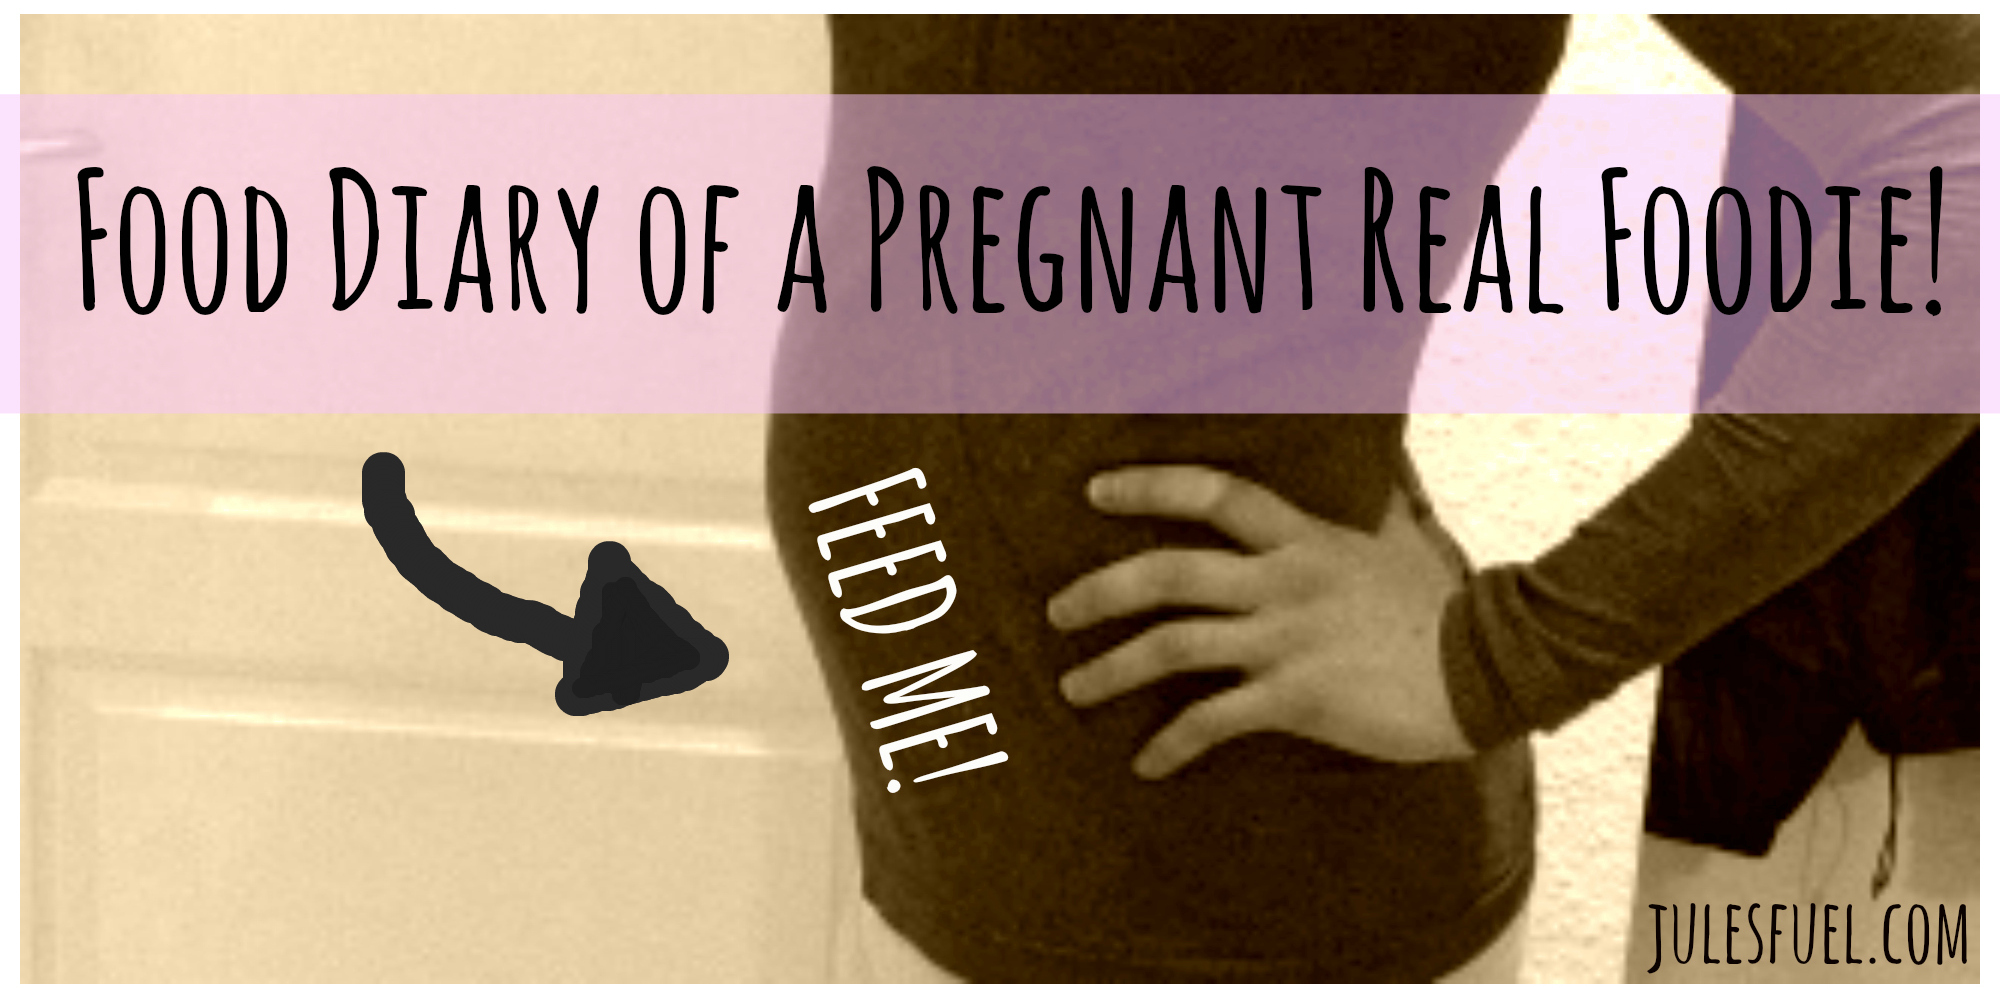 Pregnant food diary